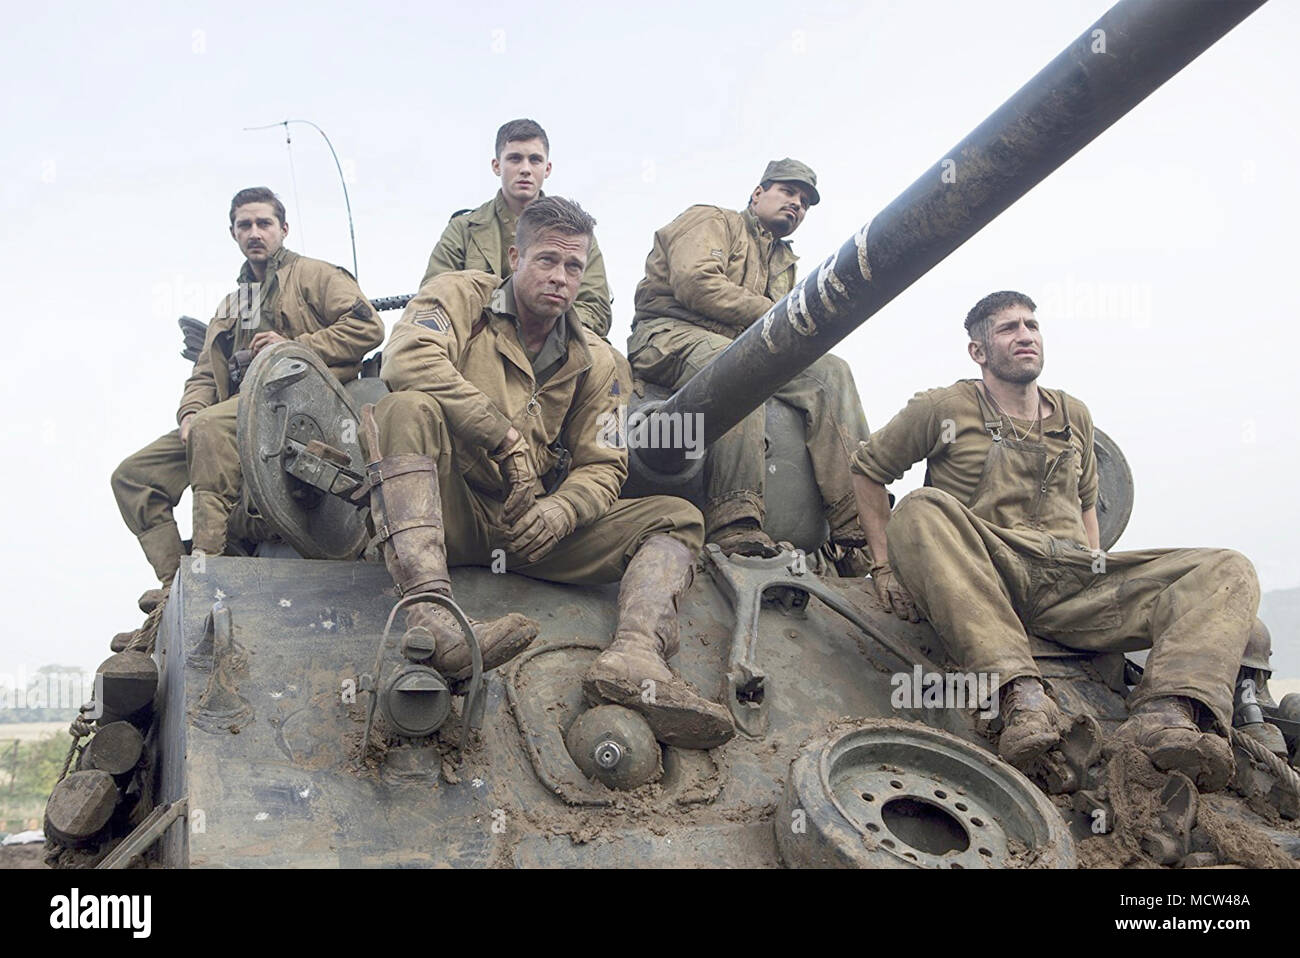 FURY 2014 Columbia Pictures film with Brad Pitt - Stock Image